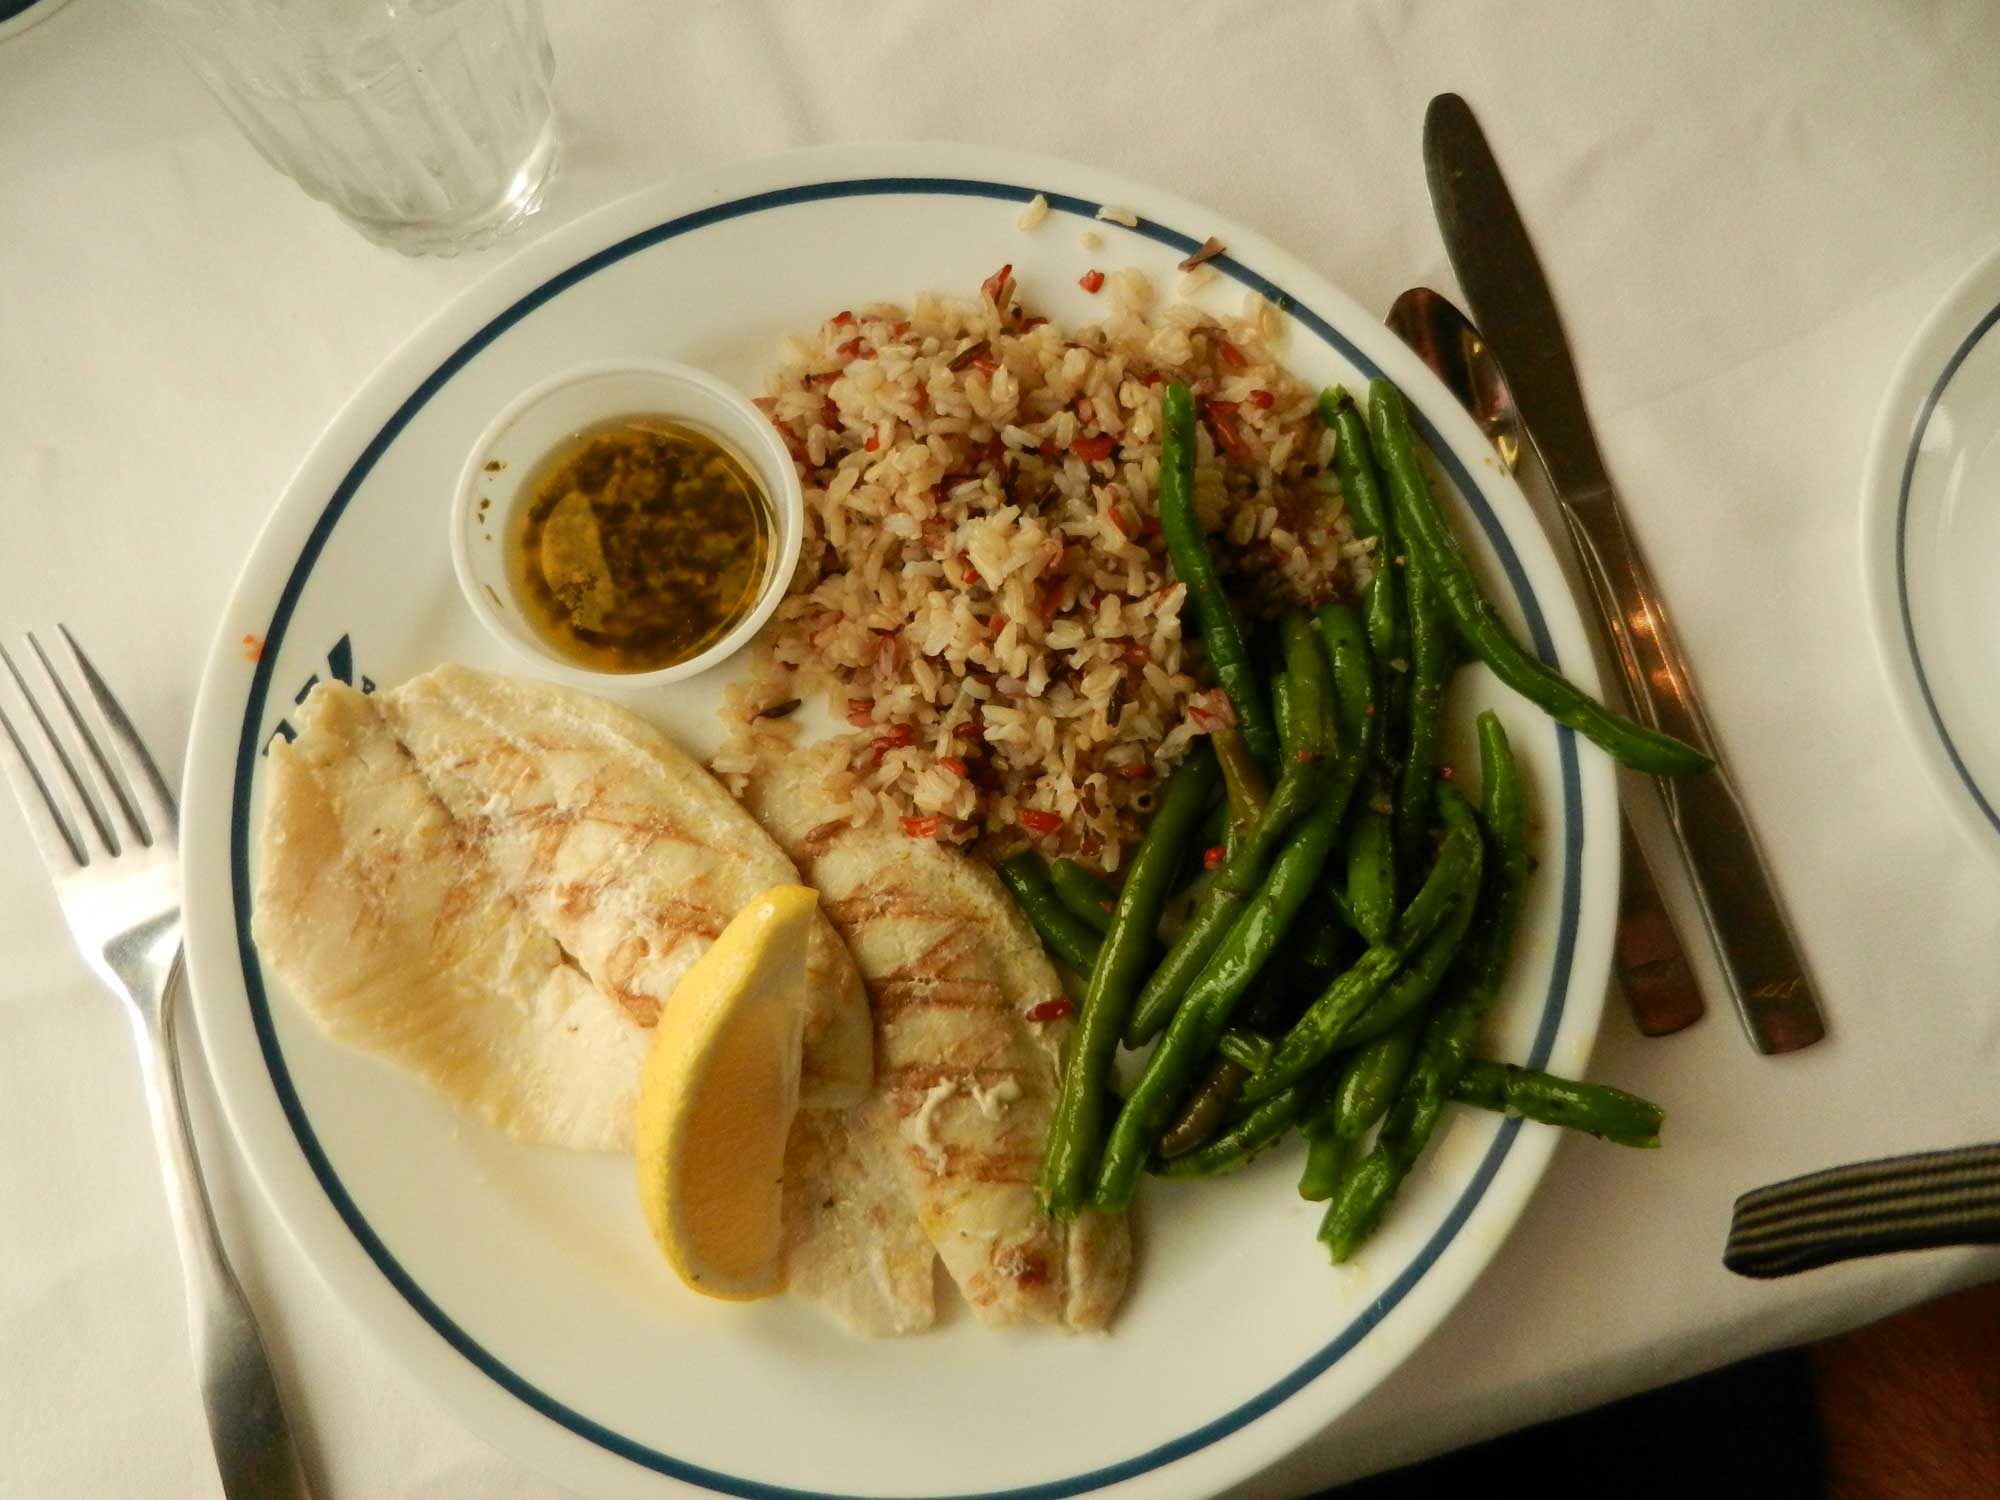 Fish with a lime wedge, brown rice, and green beans on a white plate.